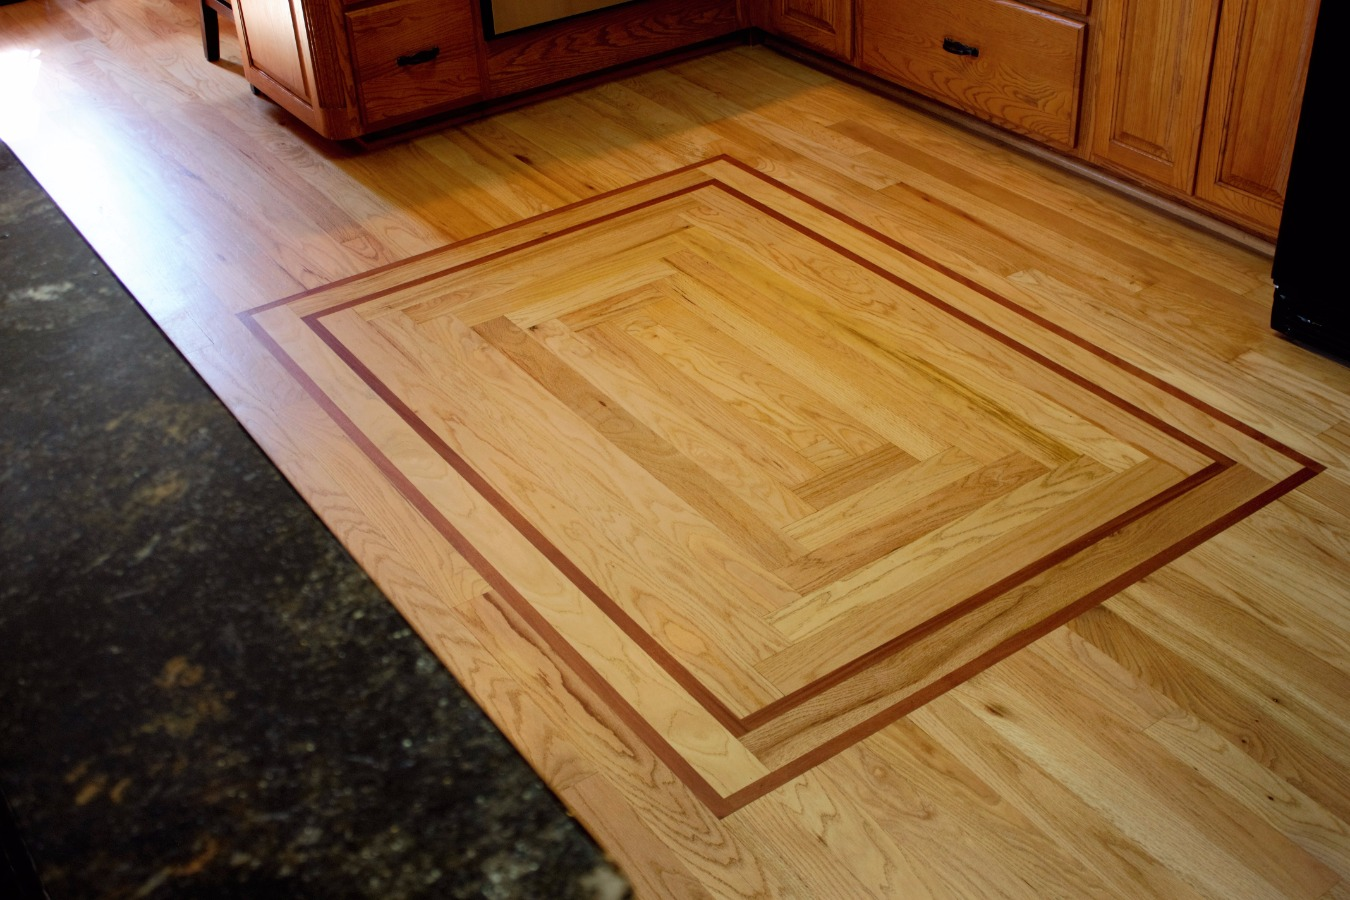 Kitchen in-lay in the Flooring